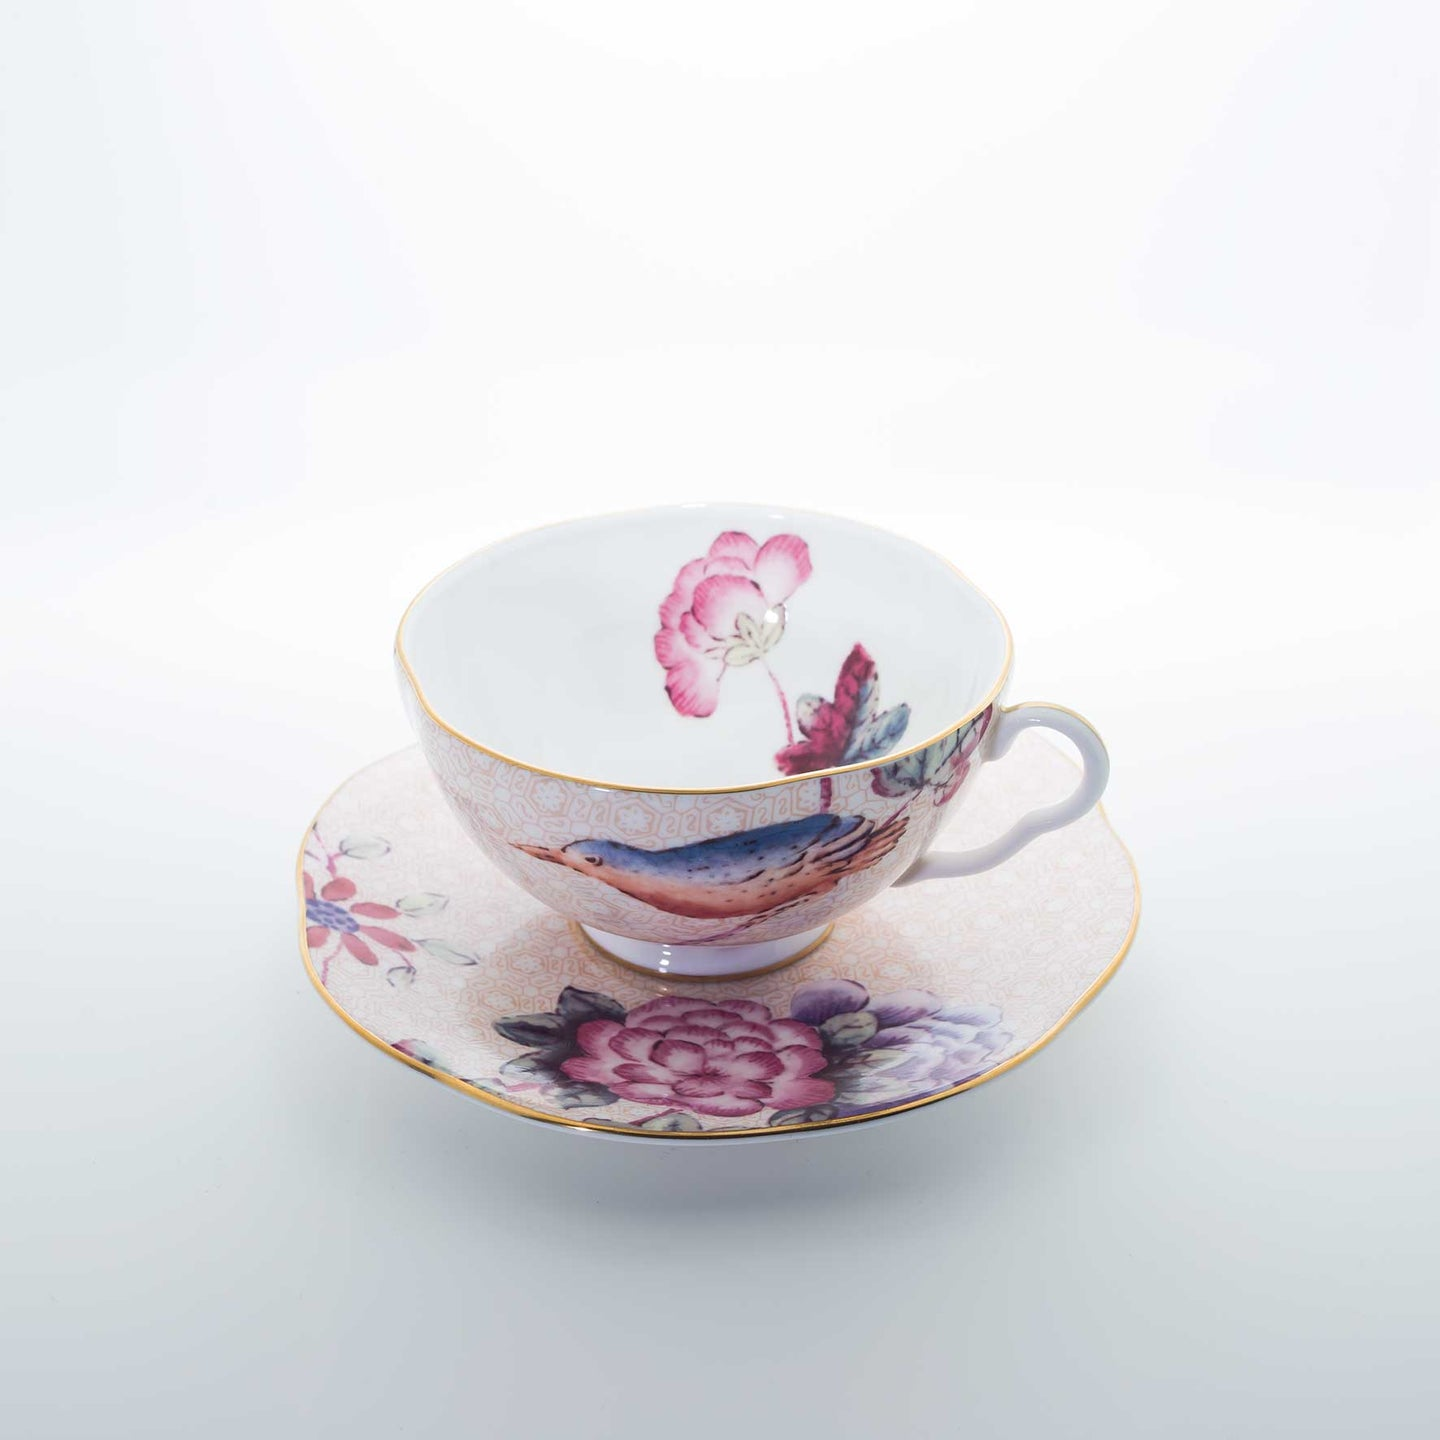 Refresh Moment Wedgwood Cuckoo Peach Teacup & Saucer